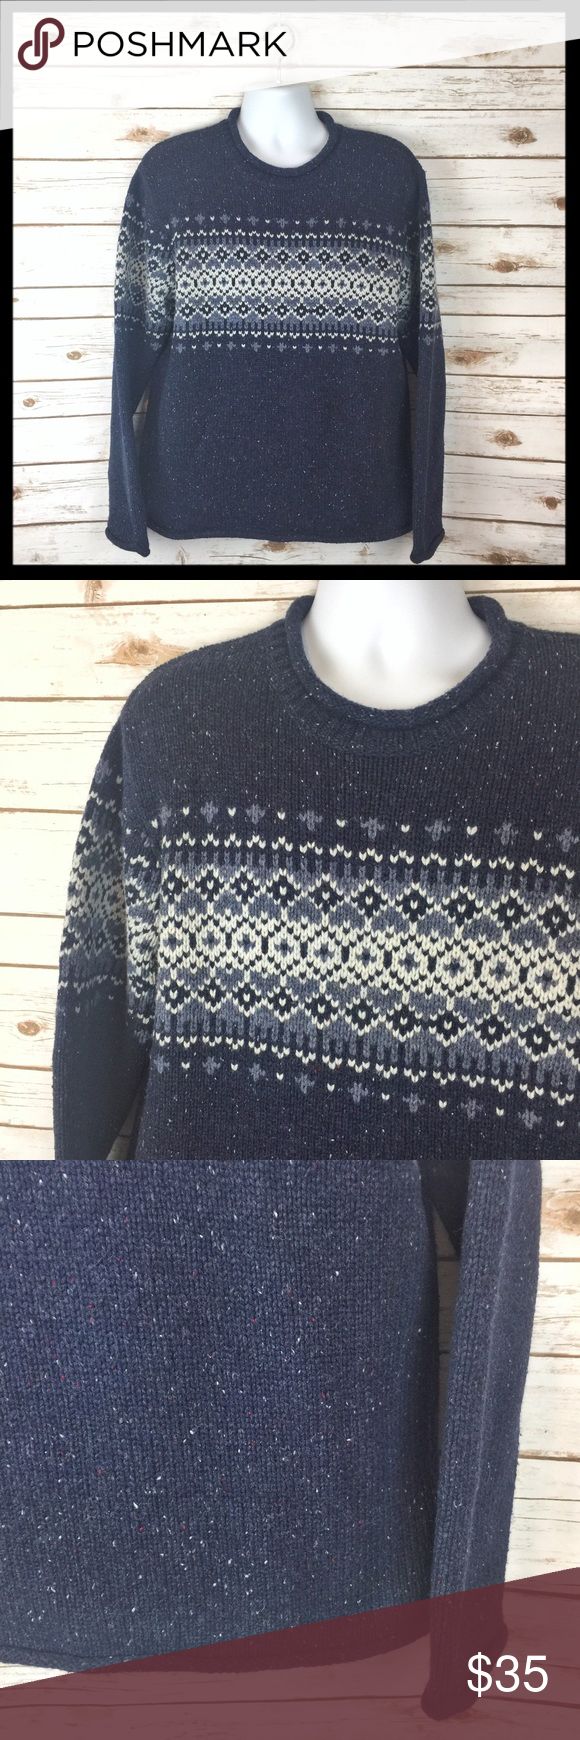 l.l bean // nordic fair isle knit wool sweater In a soft, warm and ...